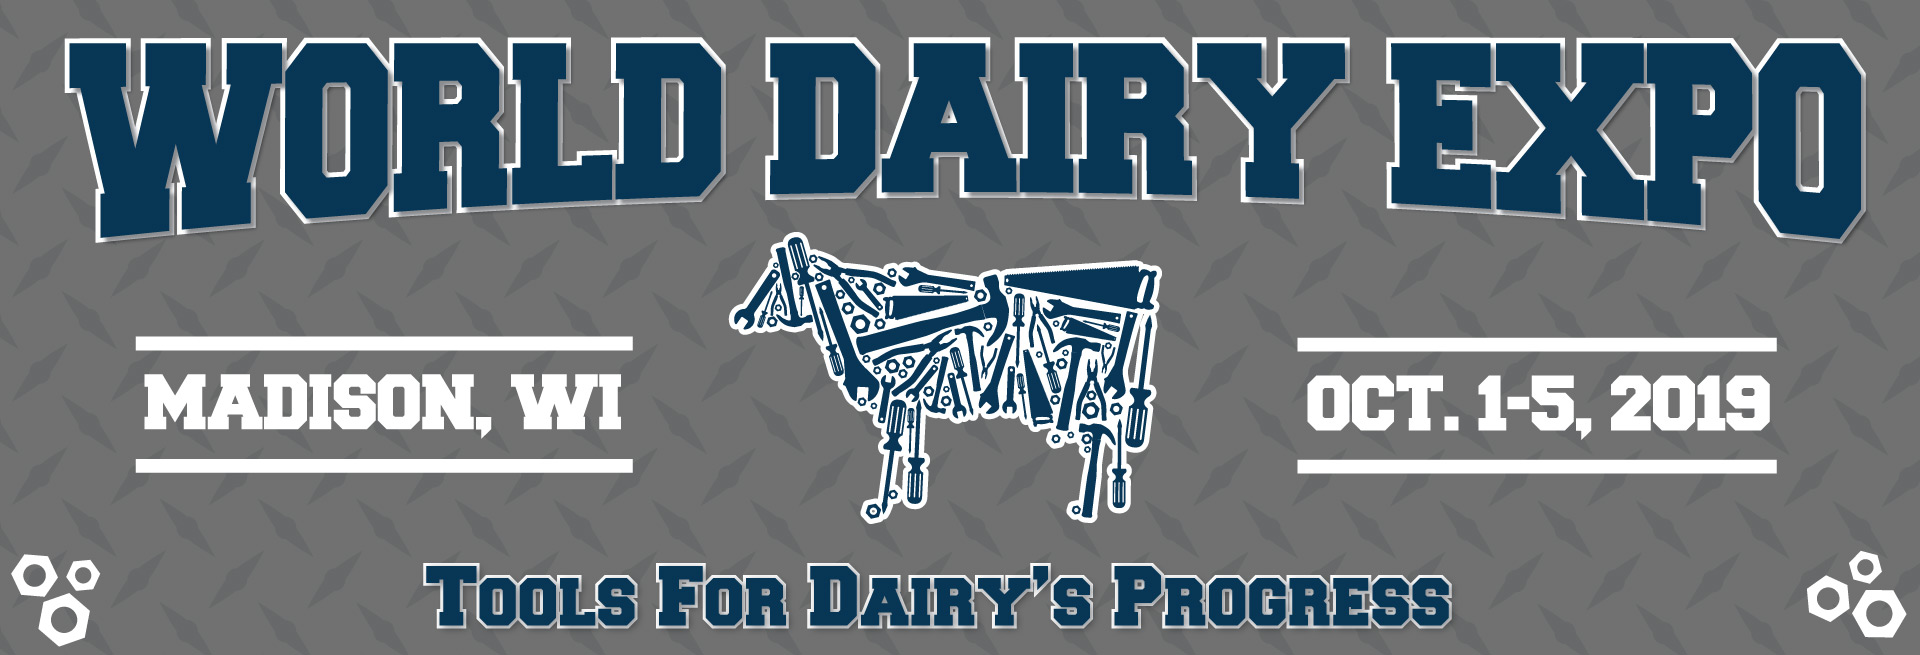 2019 World Dairy Expo Theme